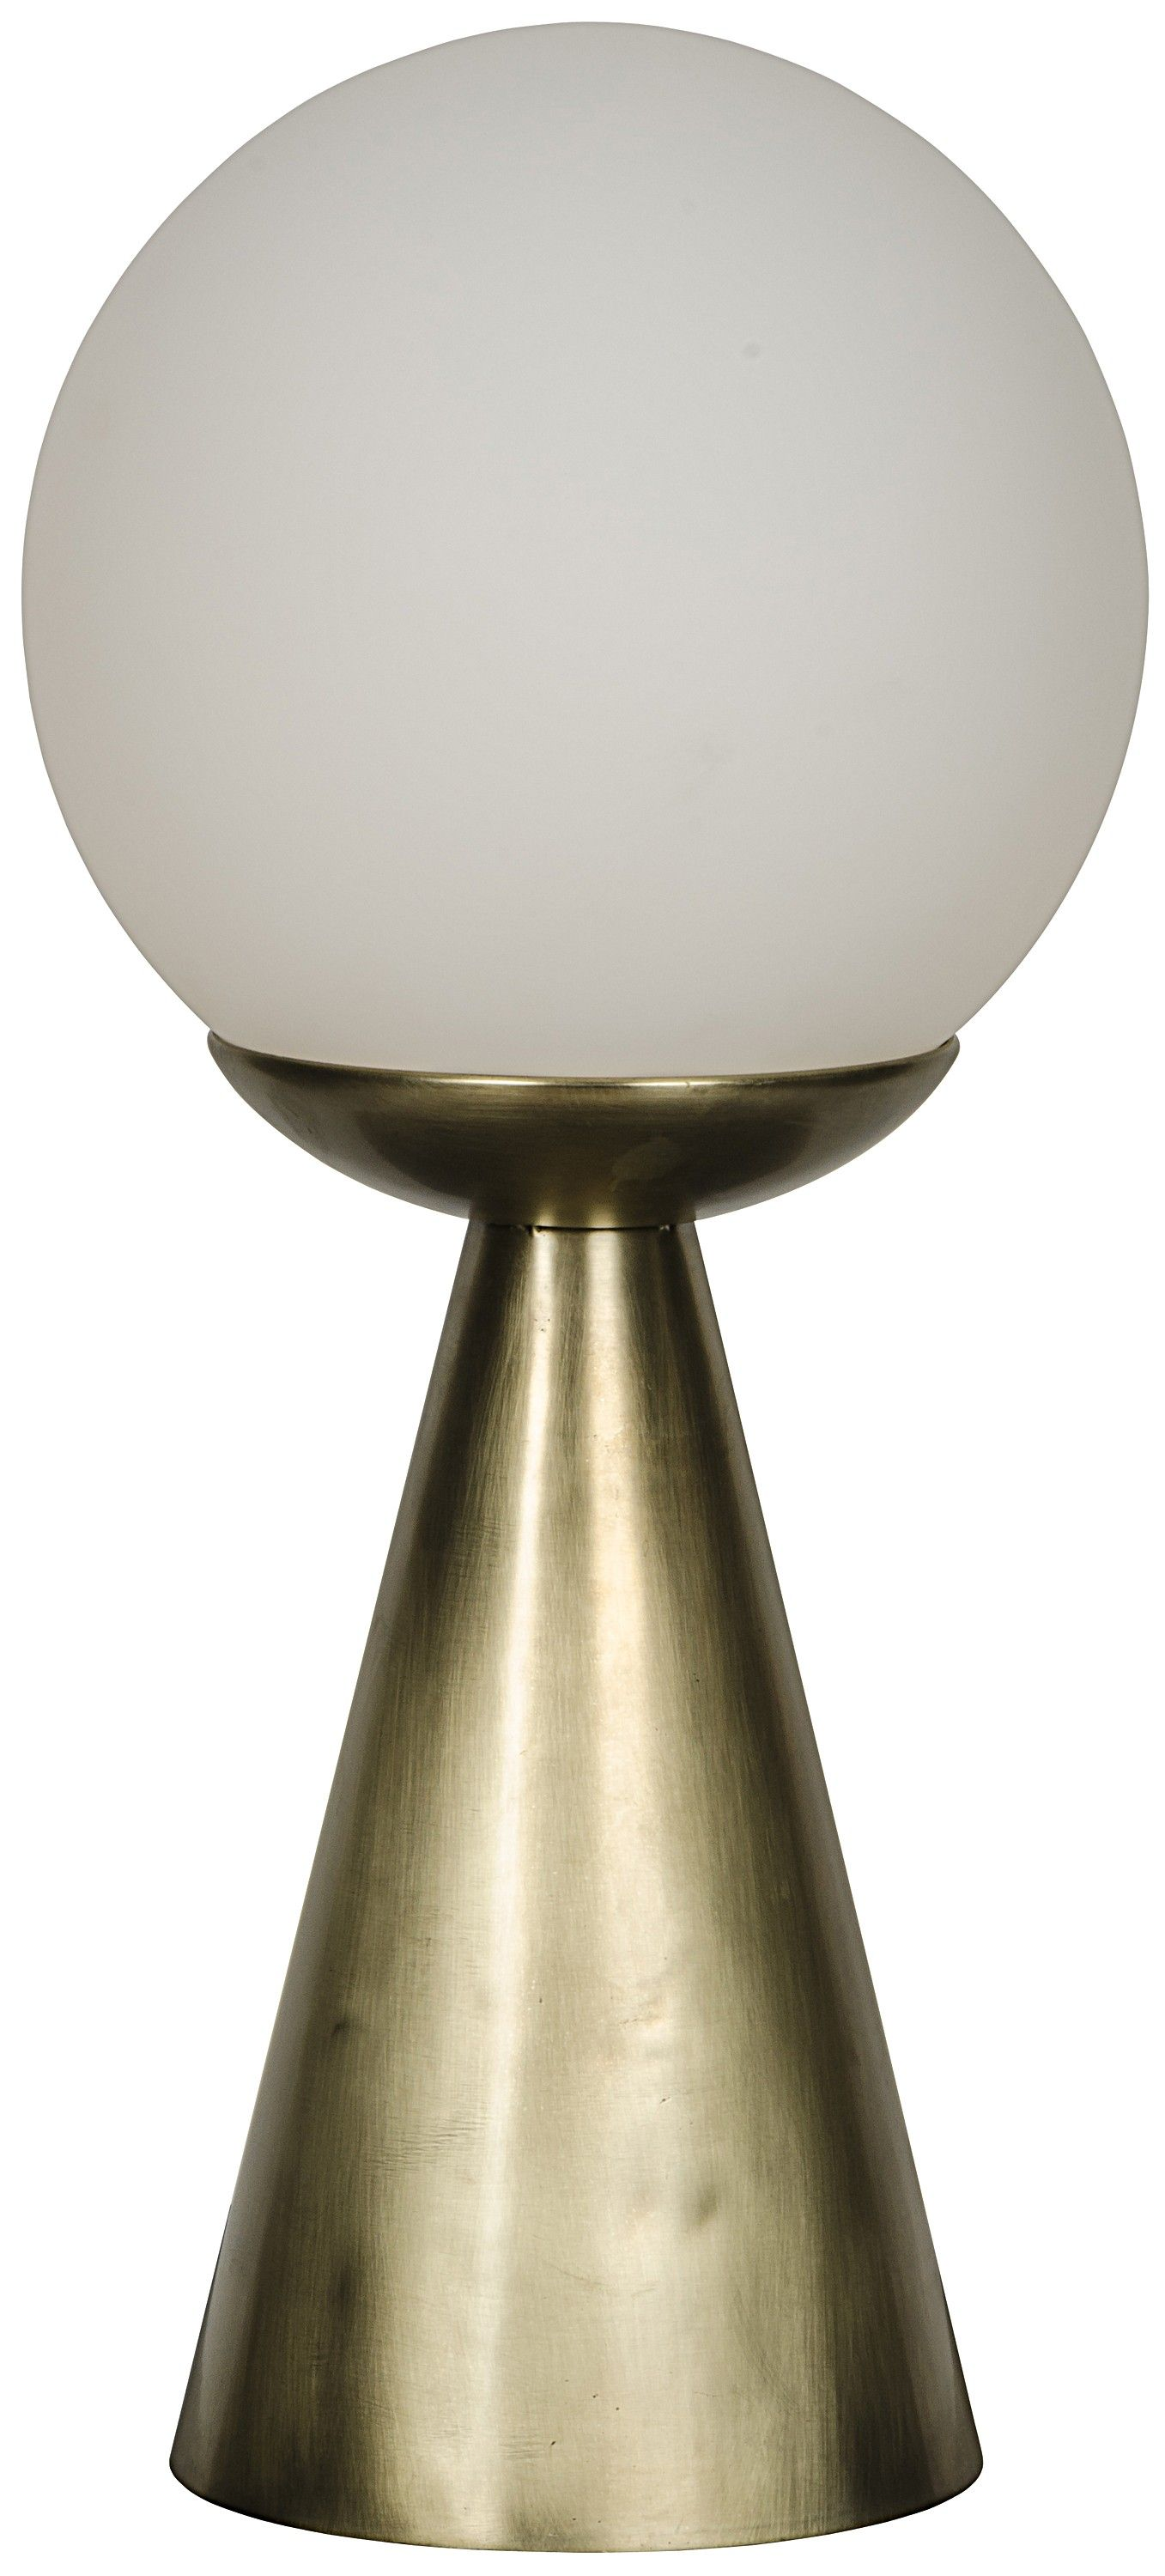 Ditch Your Boring Lamp And Replace It With This Sleek And Stylish Update The Gleaming Glass Orb And Antique Brass Finish Will Lamp Table Lamp Glass Table Lamp